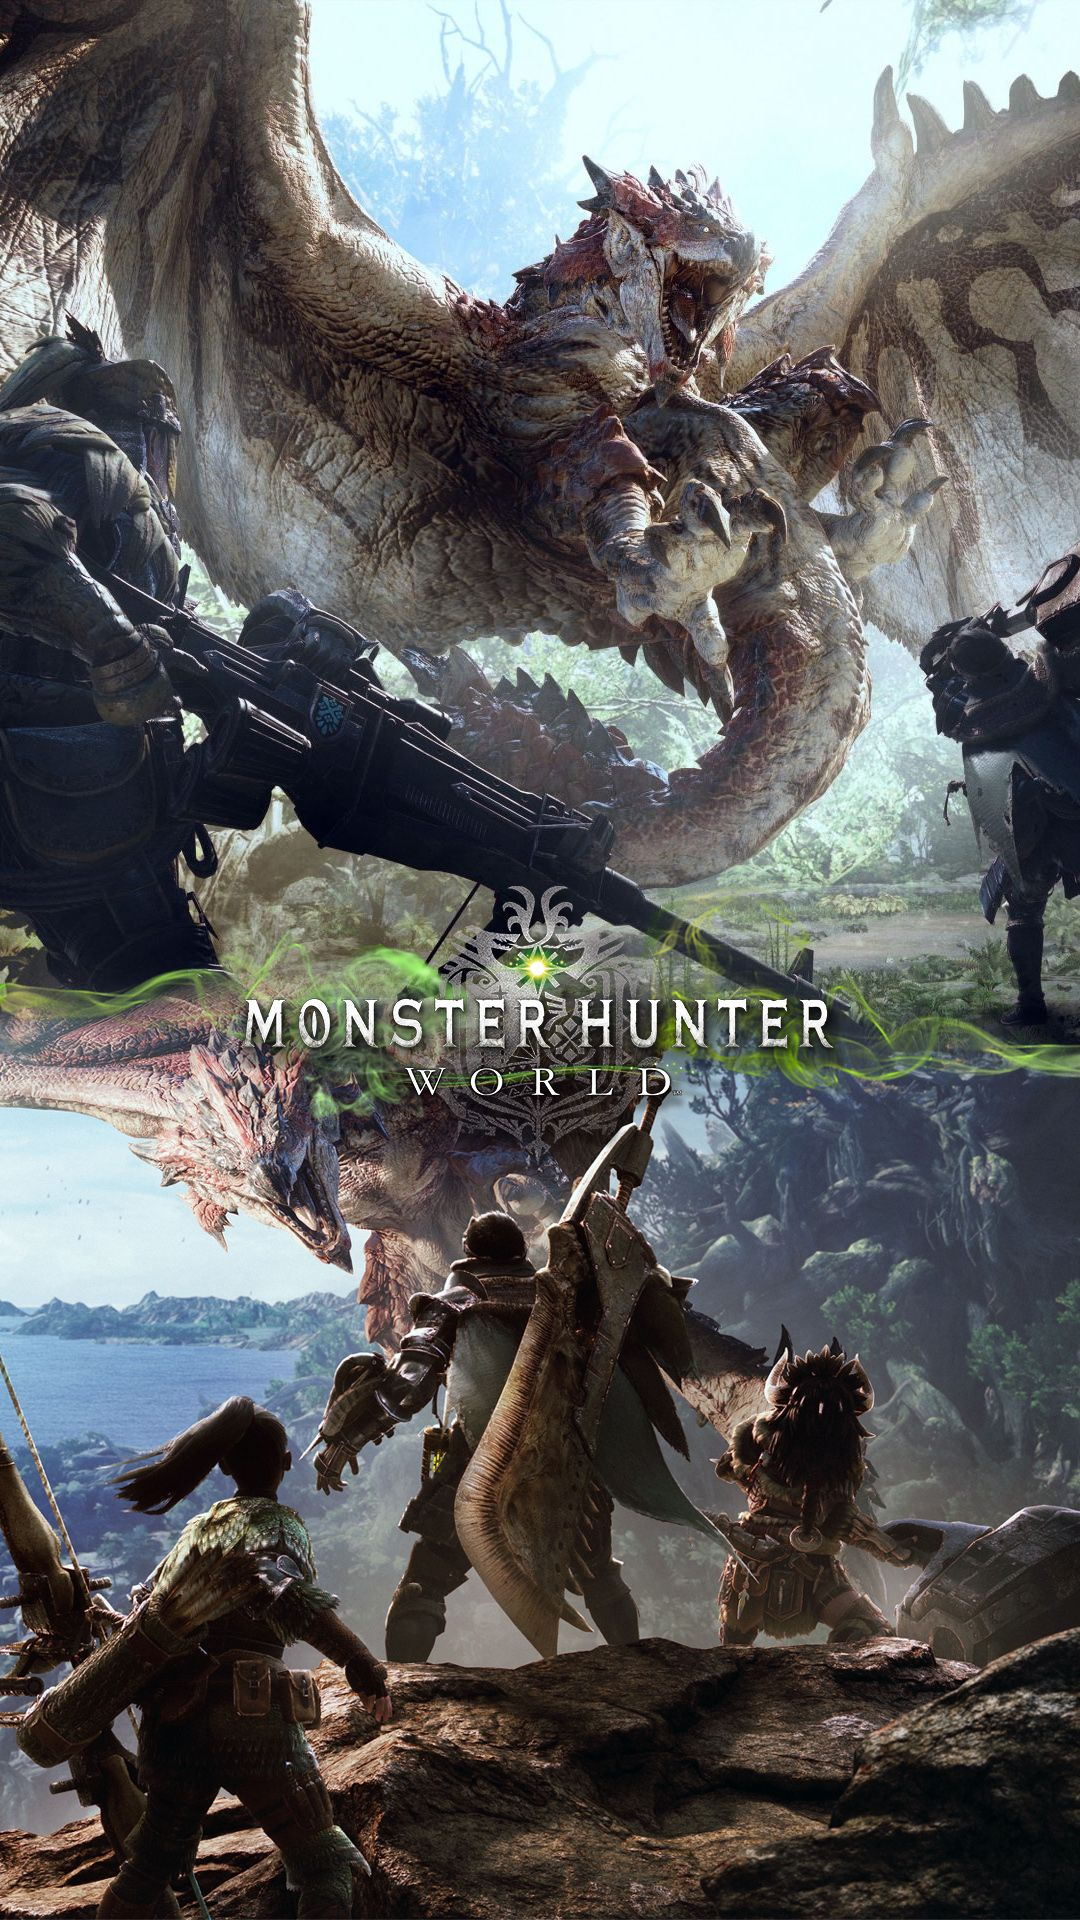 New Phone Wallpaper Monster Hunter World Gaming Art Monster Hunter World Wallpaper Monster Hunter World Monster Hunter